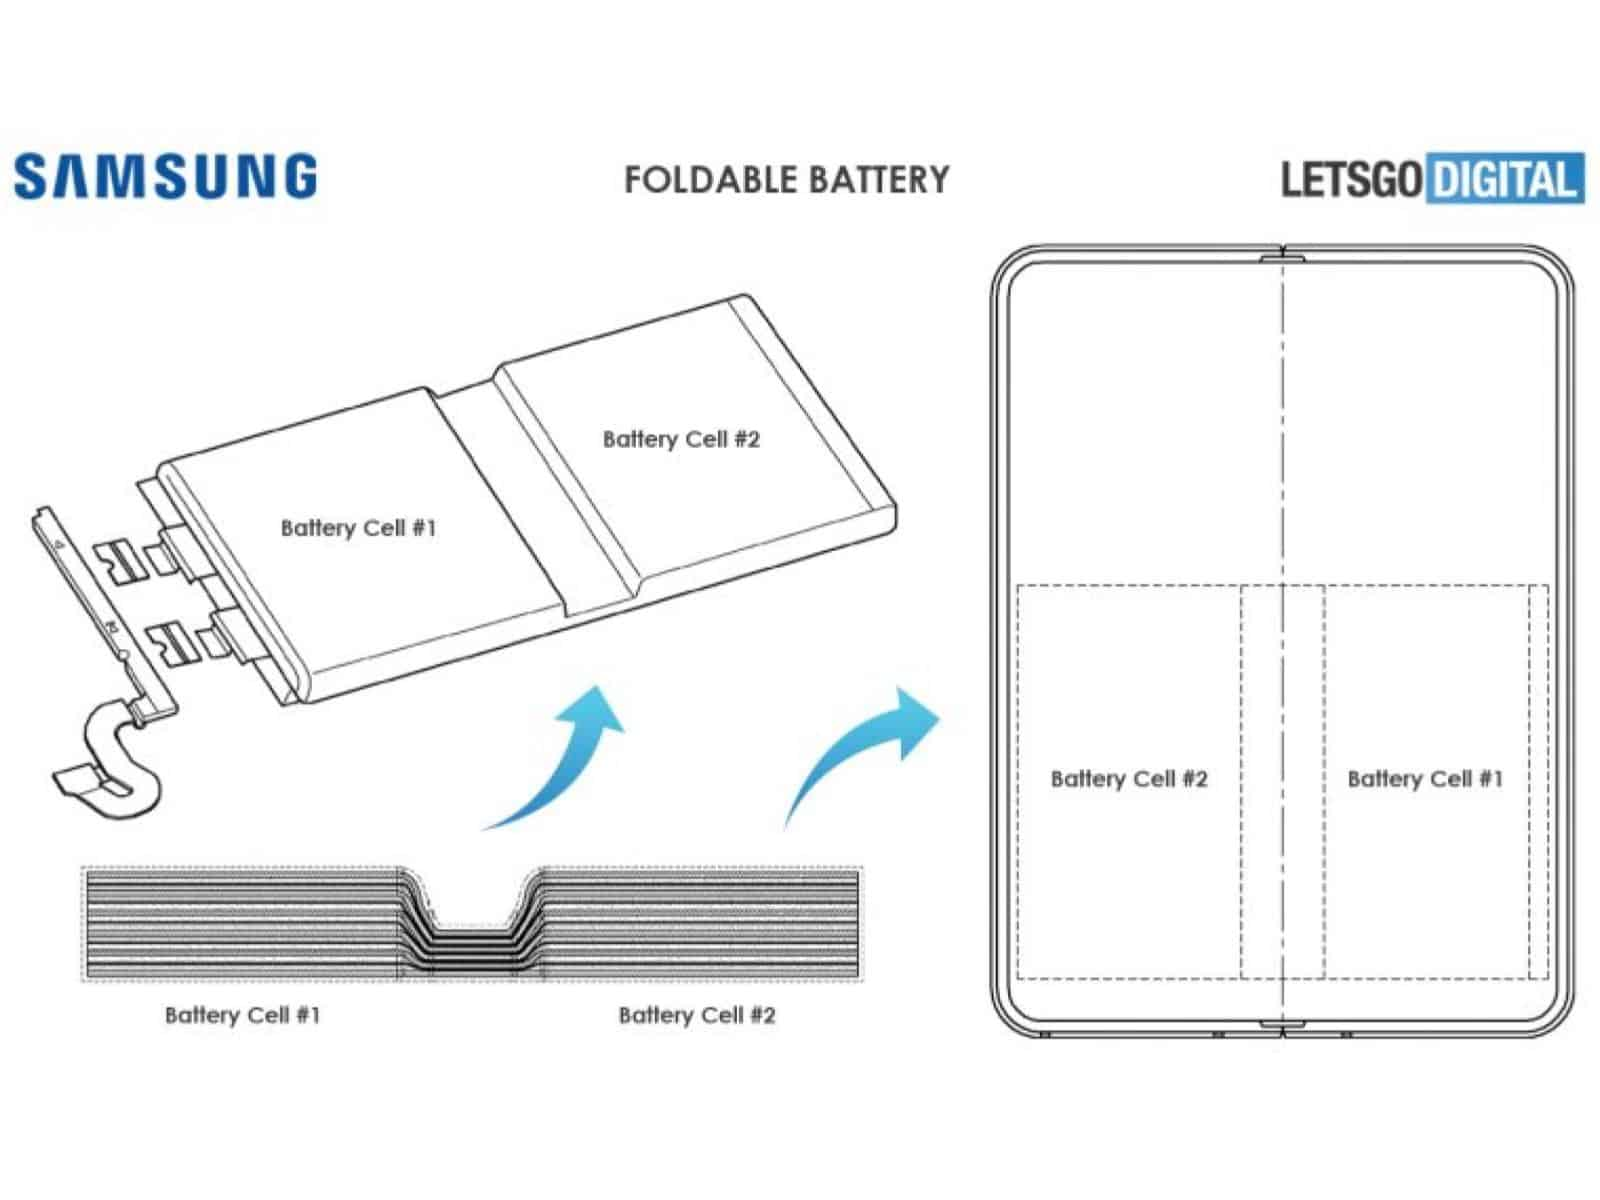 samsung flexible battery smartphones 01 from letsgodigital